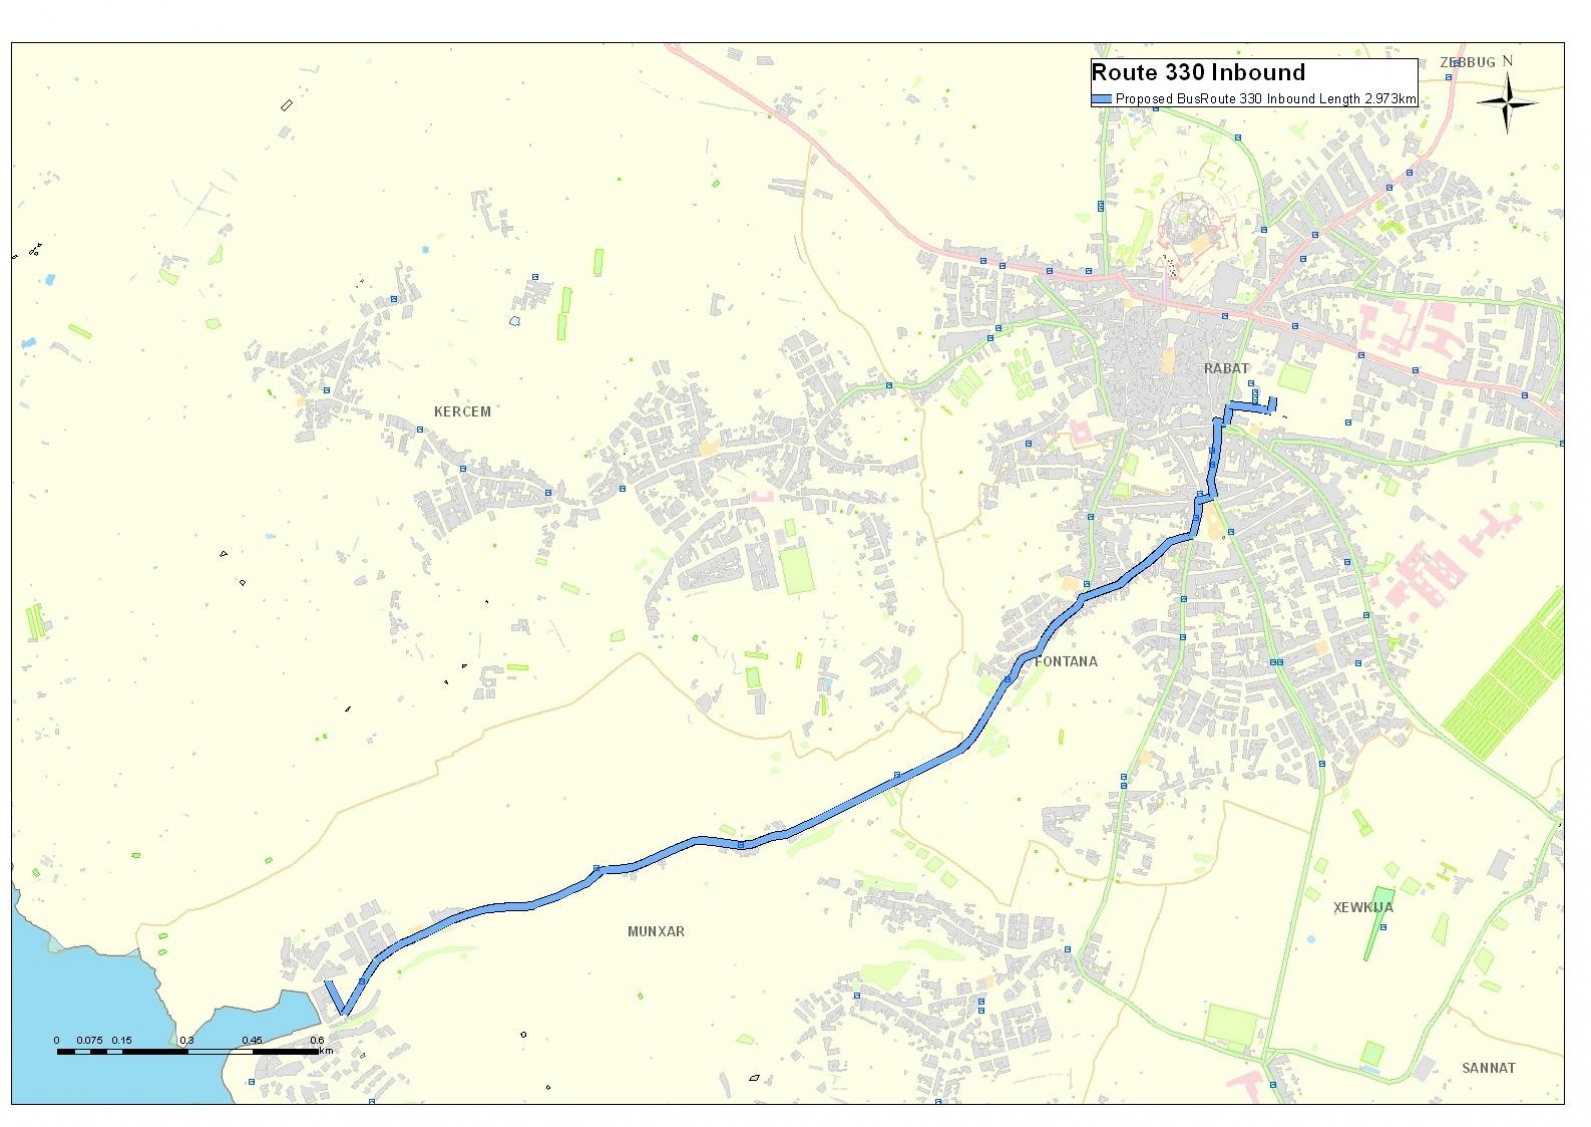 Land-current-network-routes-and-schedules-Gozo-31